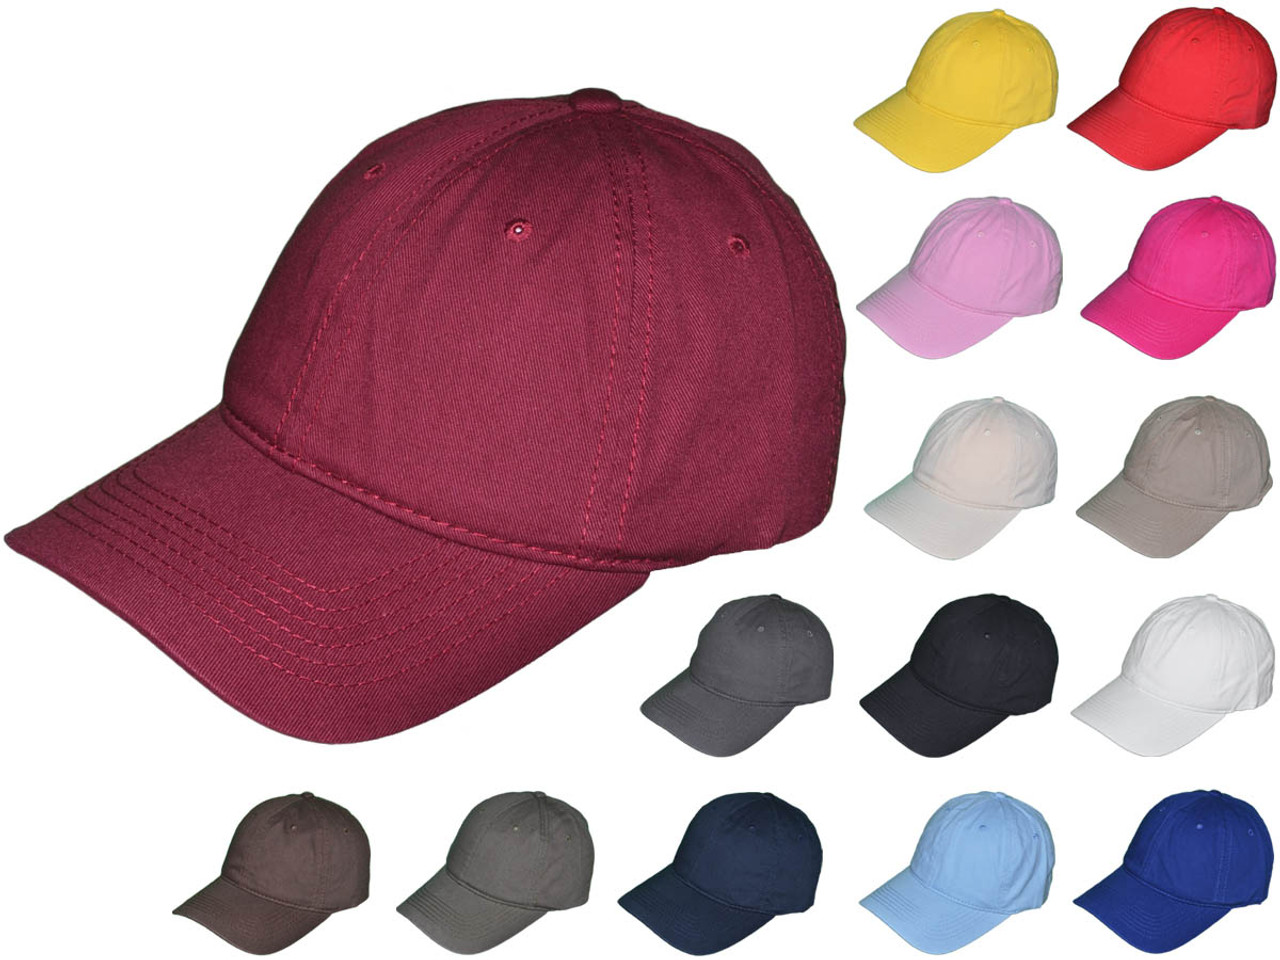 wholesale-washed-cotton-plain-dad-hats -cheap-gjk004-all-colors  48851.1546530828.jpg c 2 imbypass on 3ccb6f2fb61